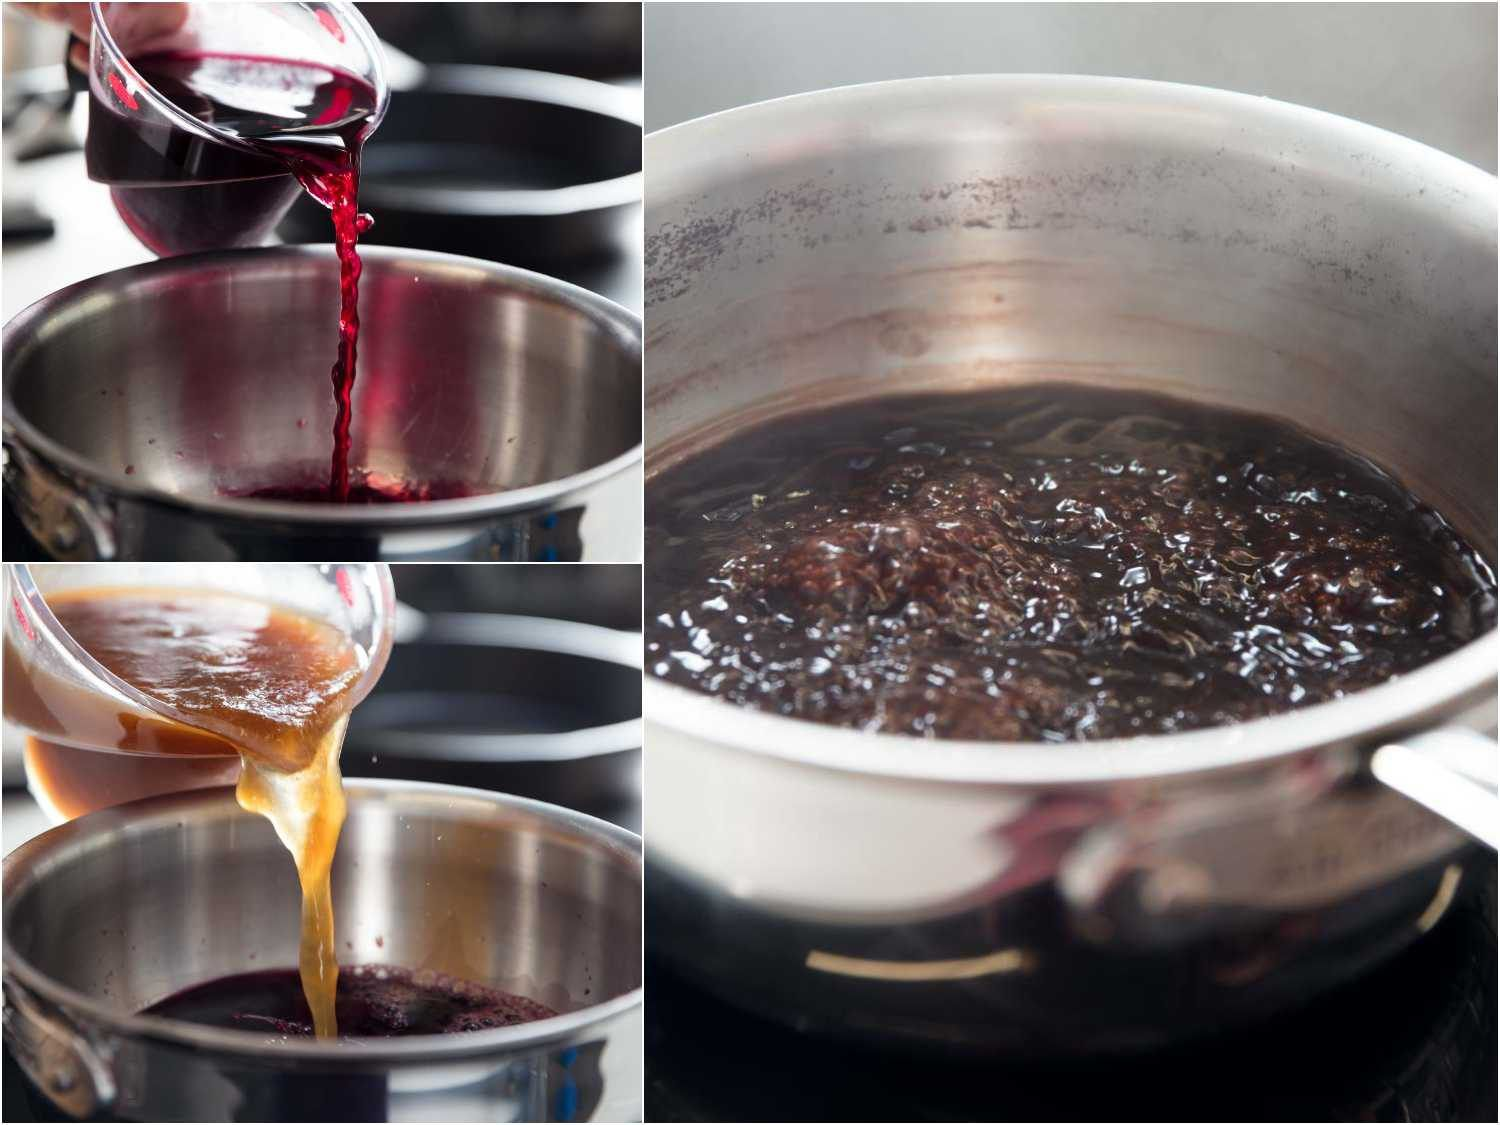 Process shots of red wine and beef reduction for jus.